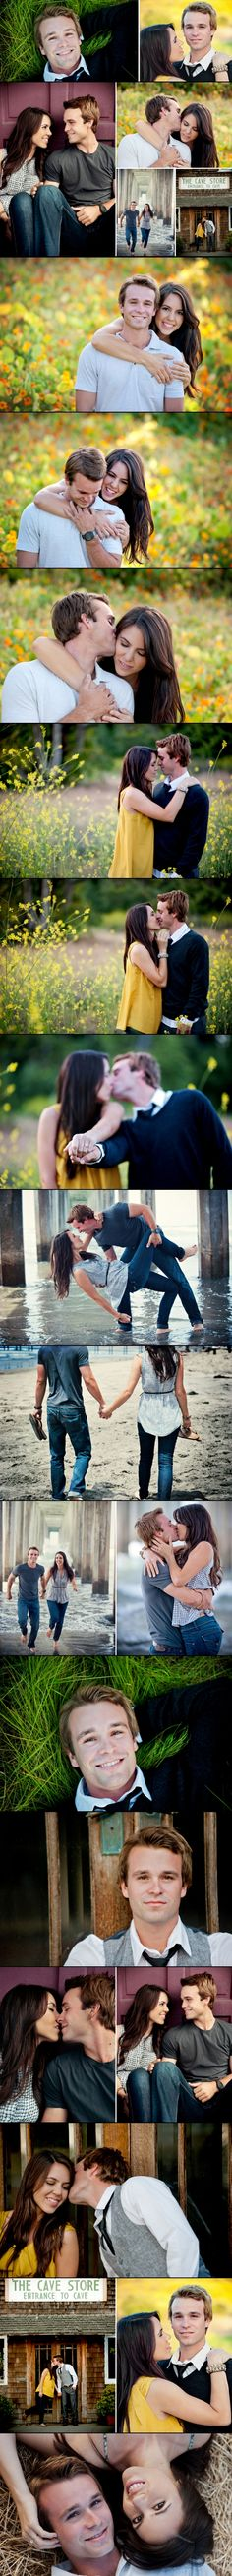 Engagement Photo Poses